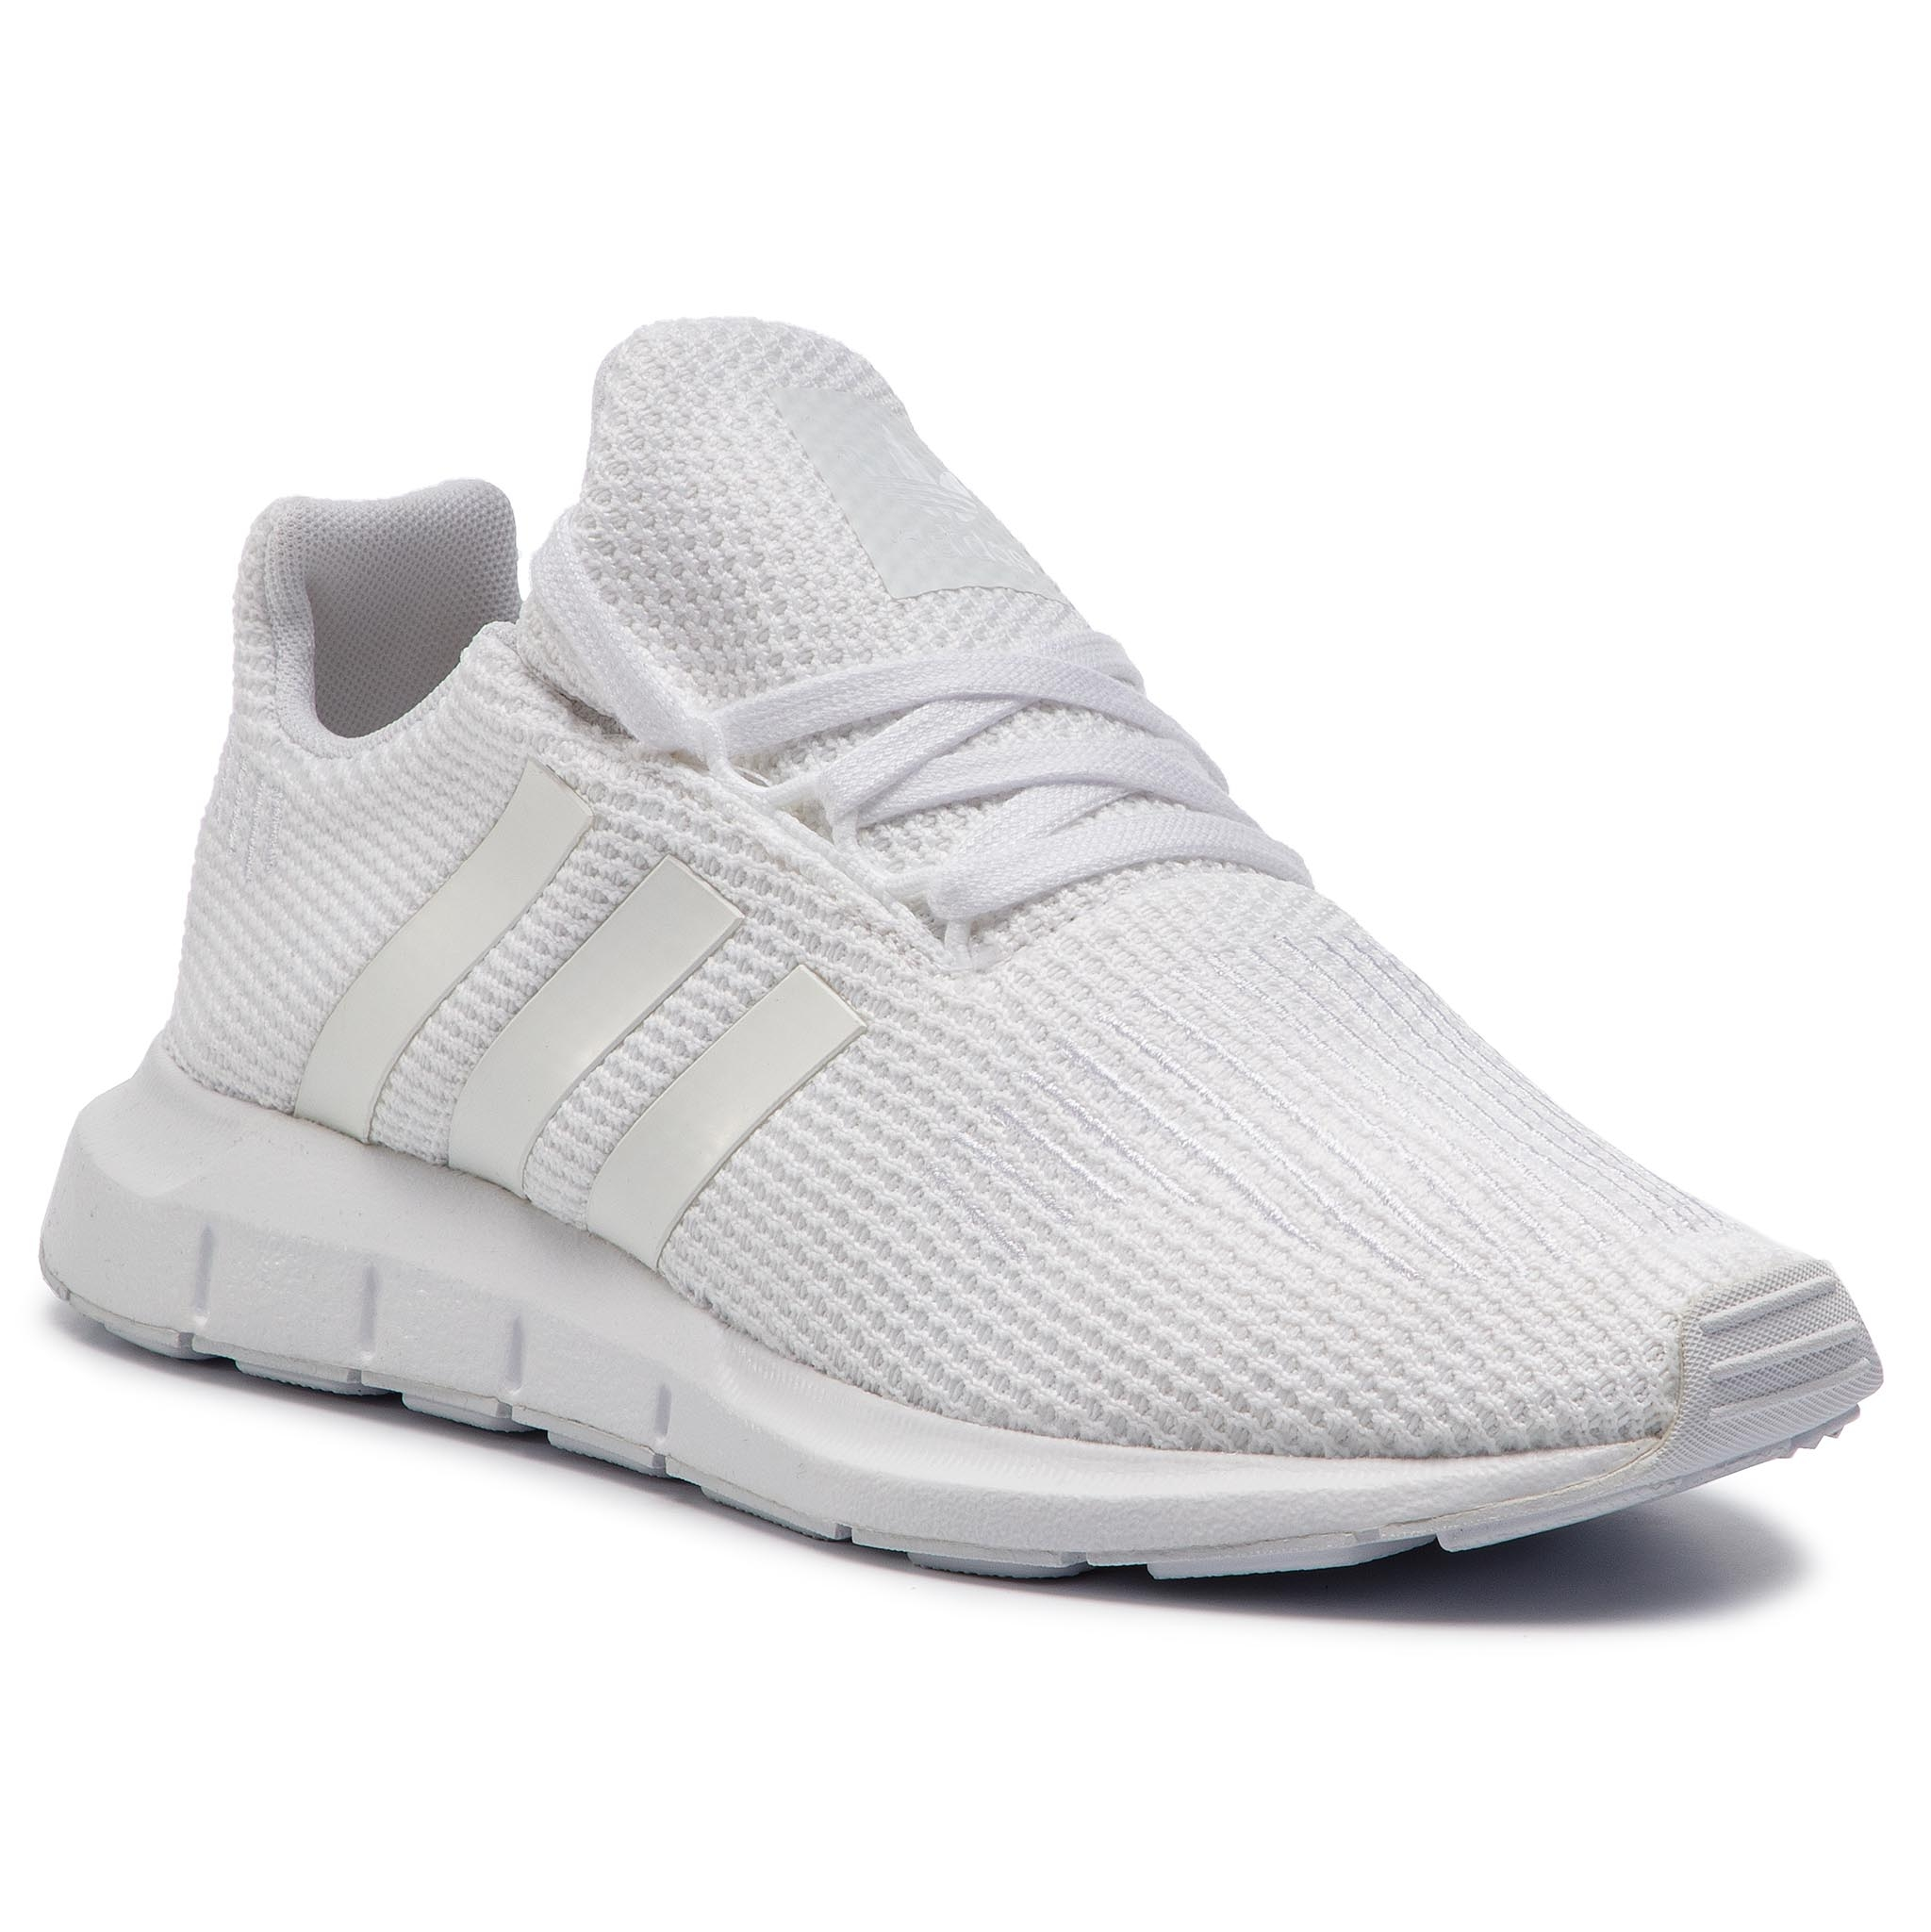 Buty adidas – Swift Run J F34315 Ftwwht/Ftwwht/Ftwwht